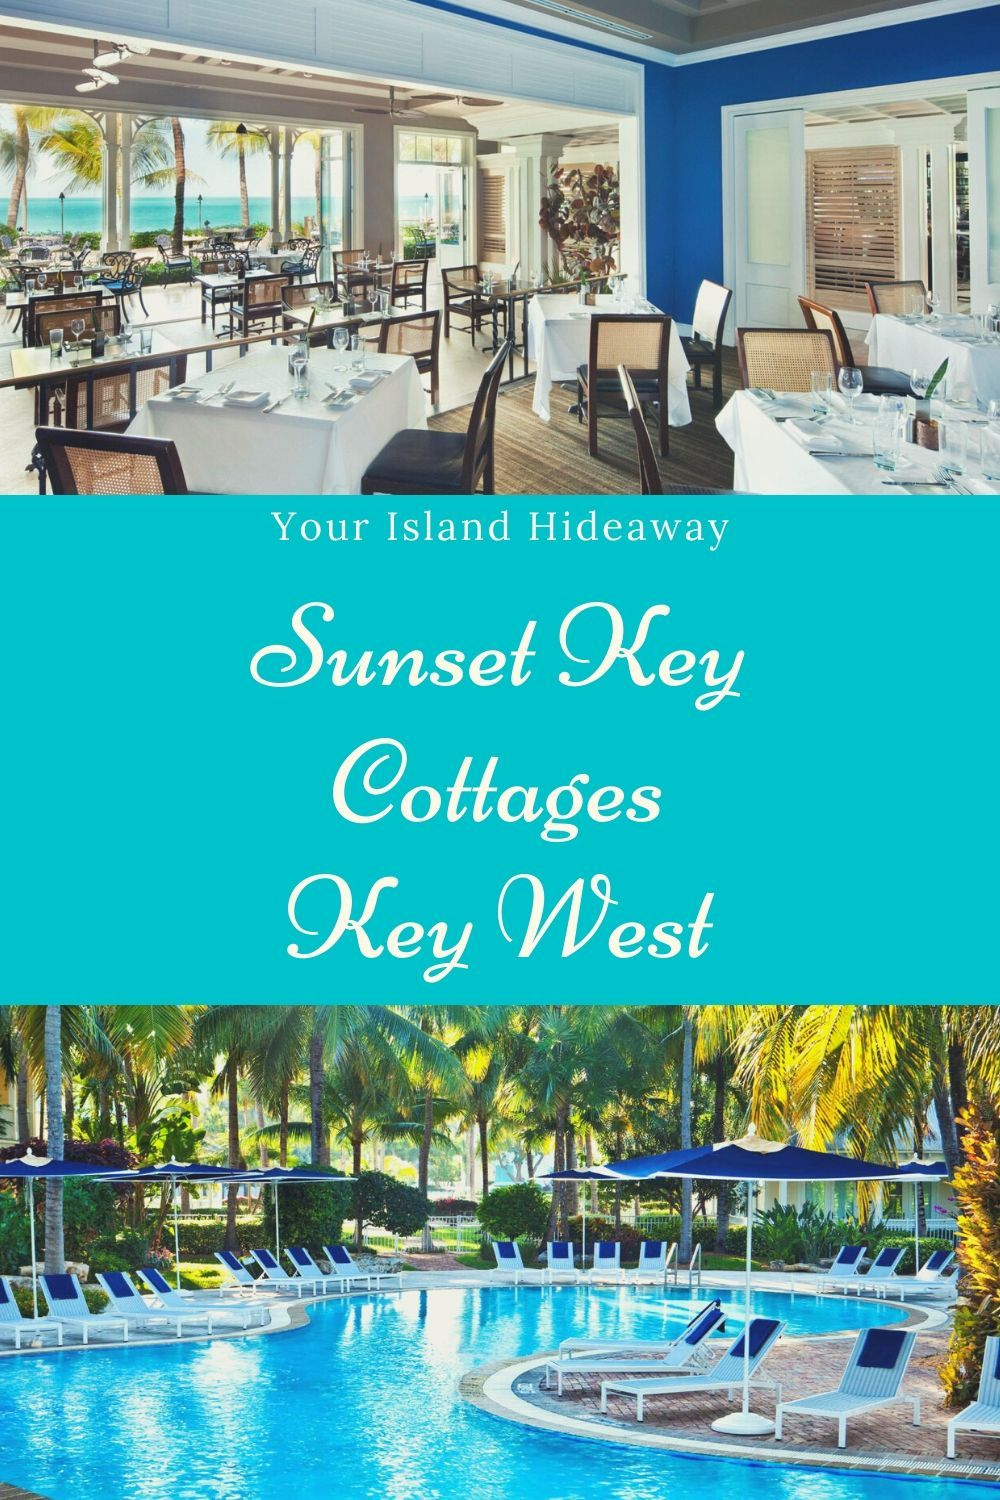 Sunset Key Cottages In 2020 Key West Resorts Key West Florida Vacation Key West Vacations